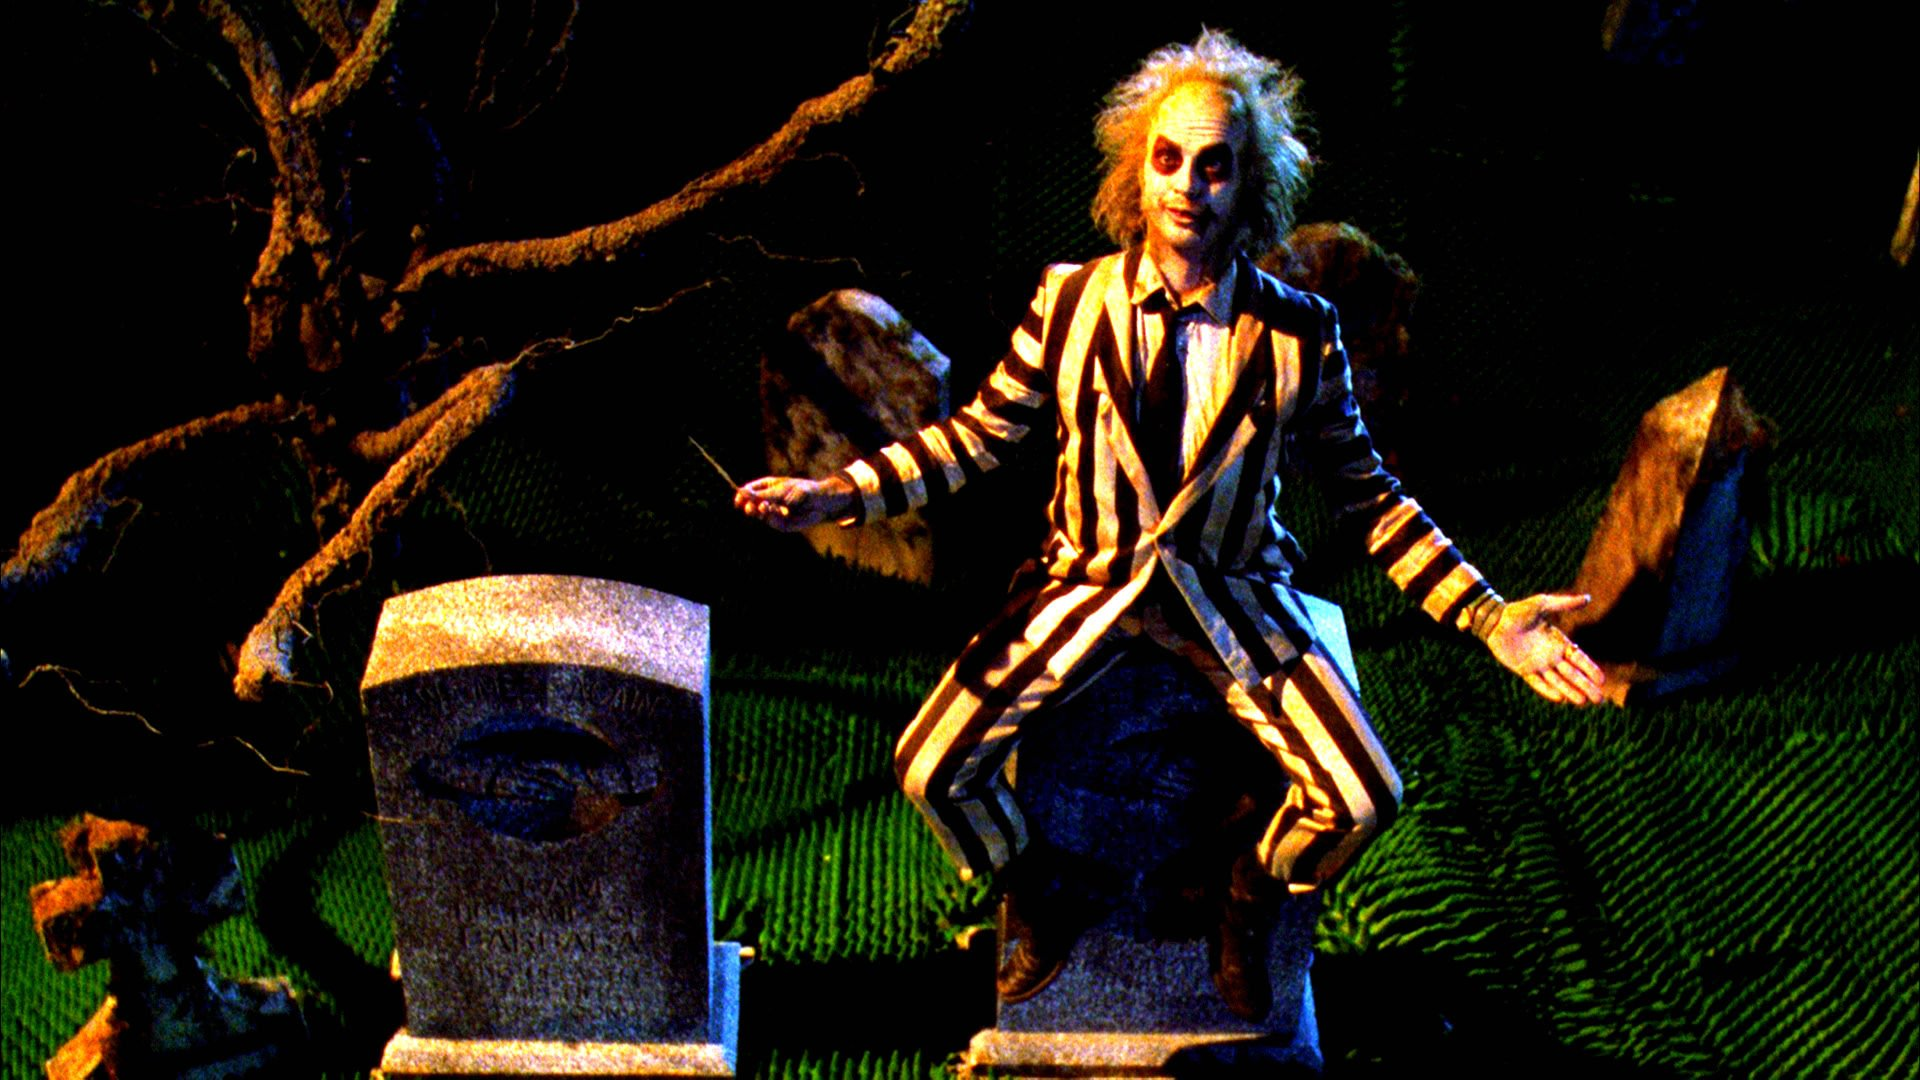 Fall Witch Wallpaper Beetlejuice Comedy Fantasy Dark Movie Film Monster Horror